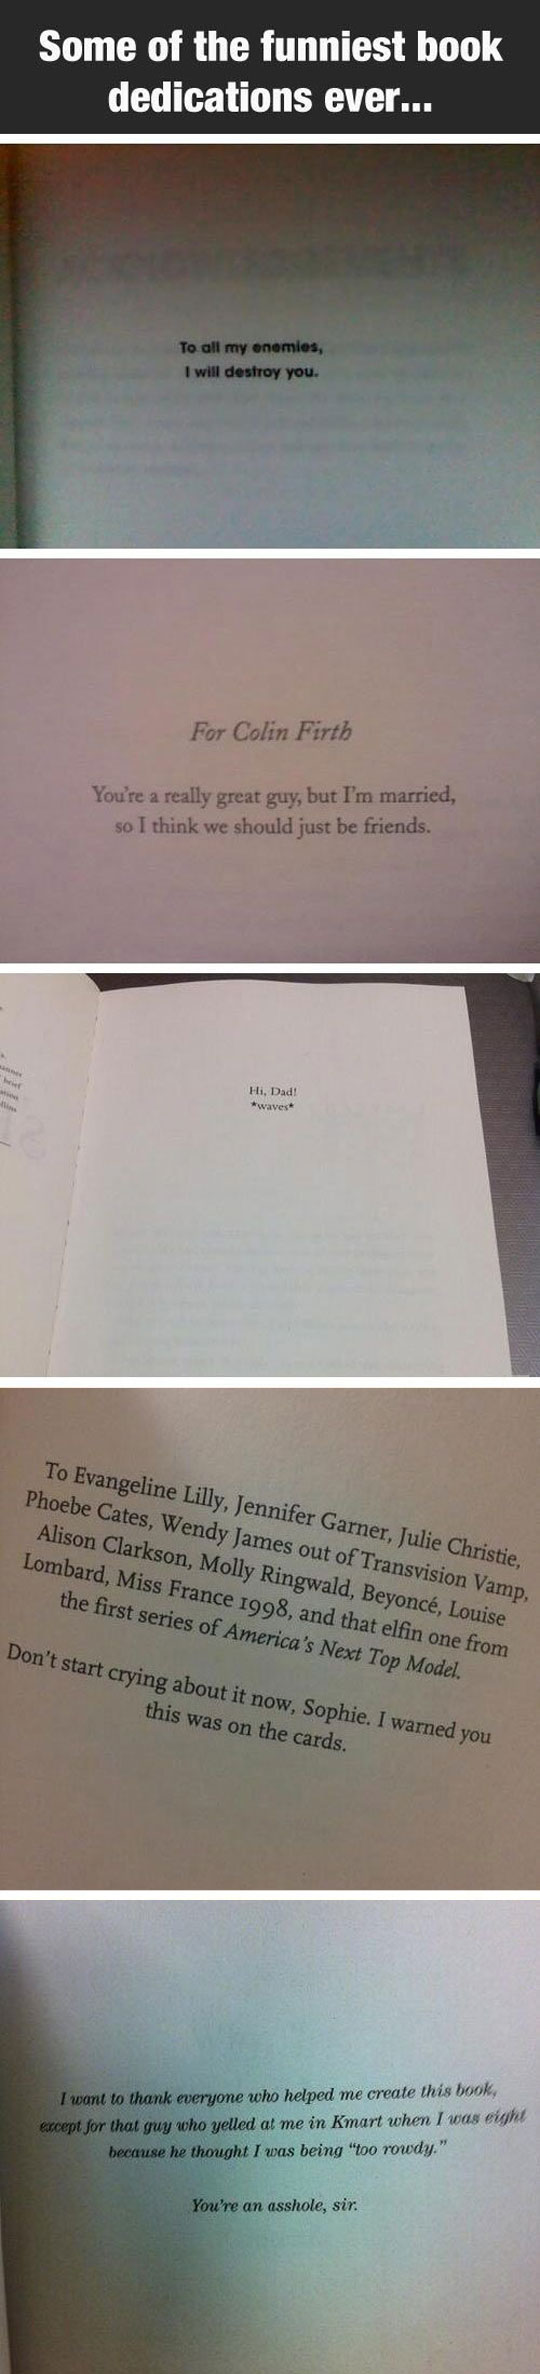 cool-funny-book-dedication